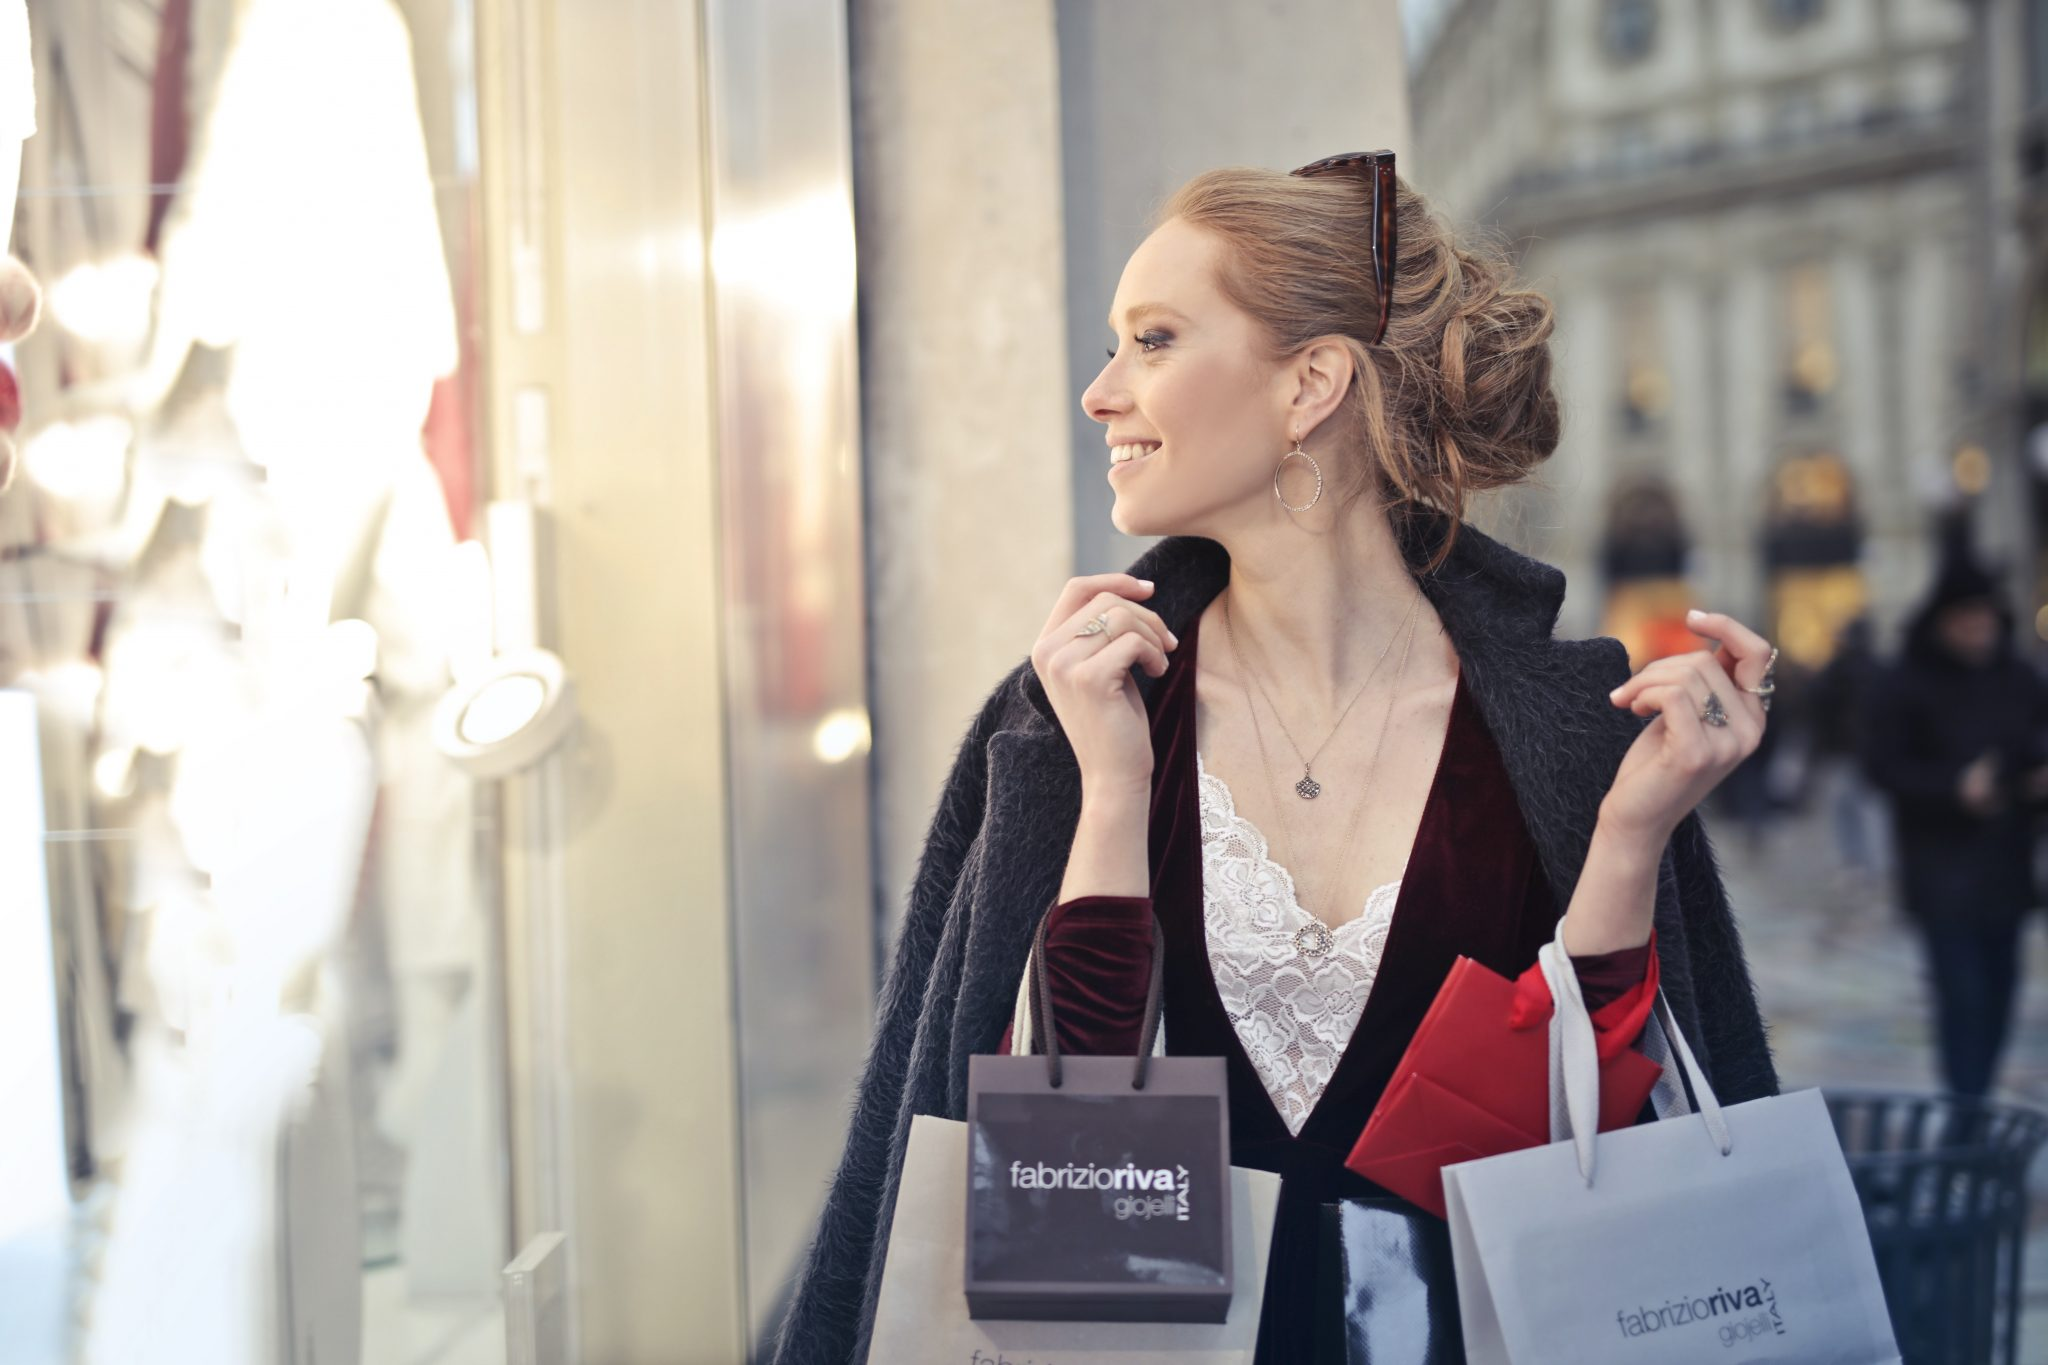 Buy now pay later stores later without credit check